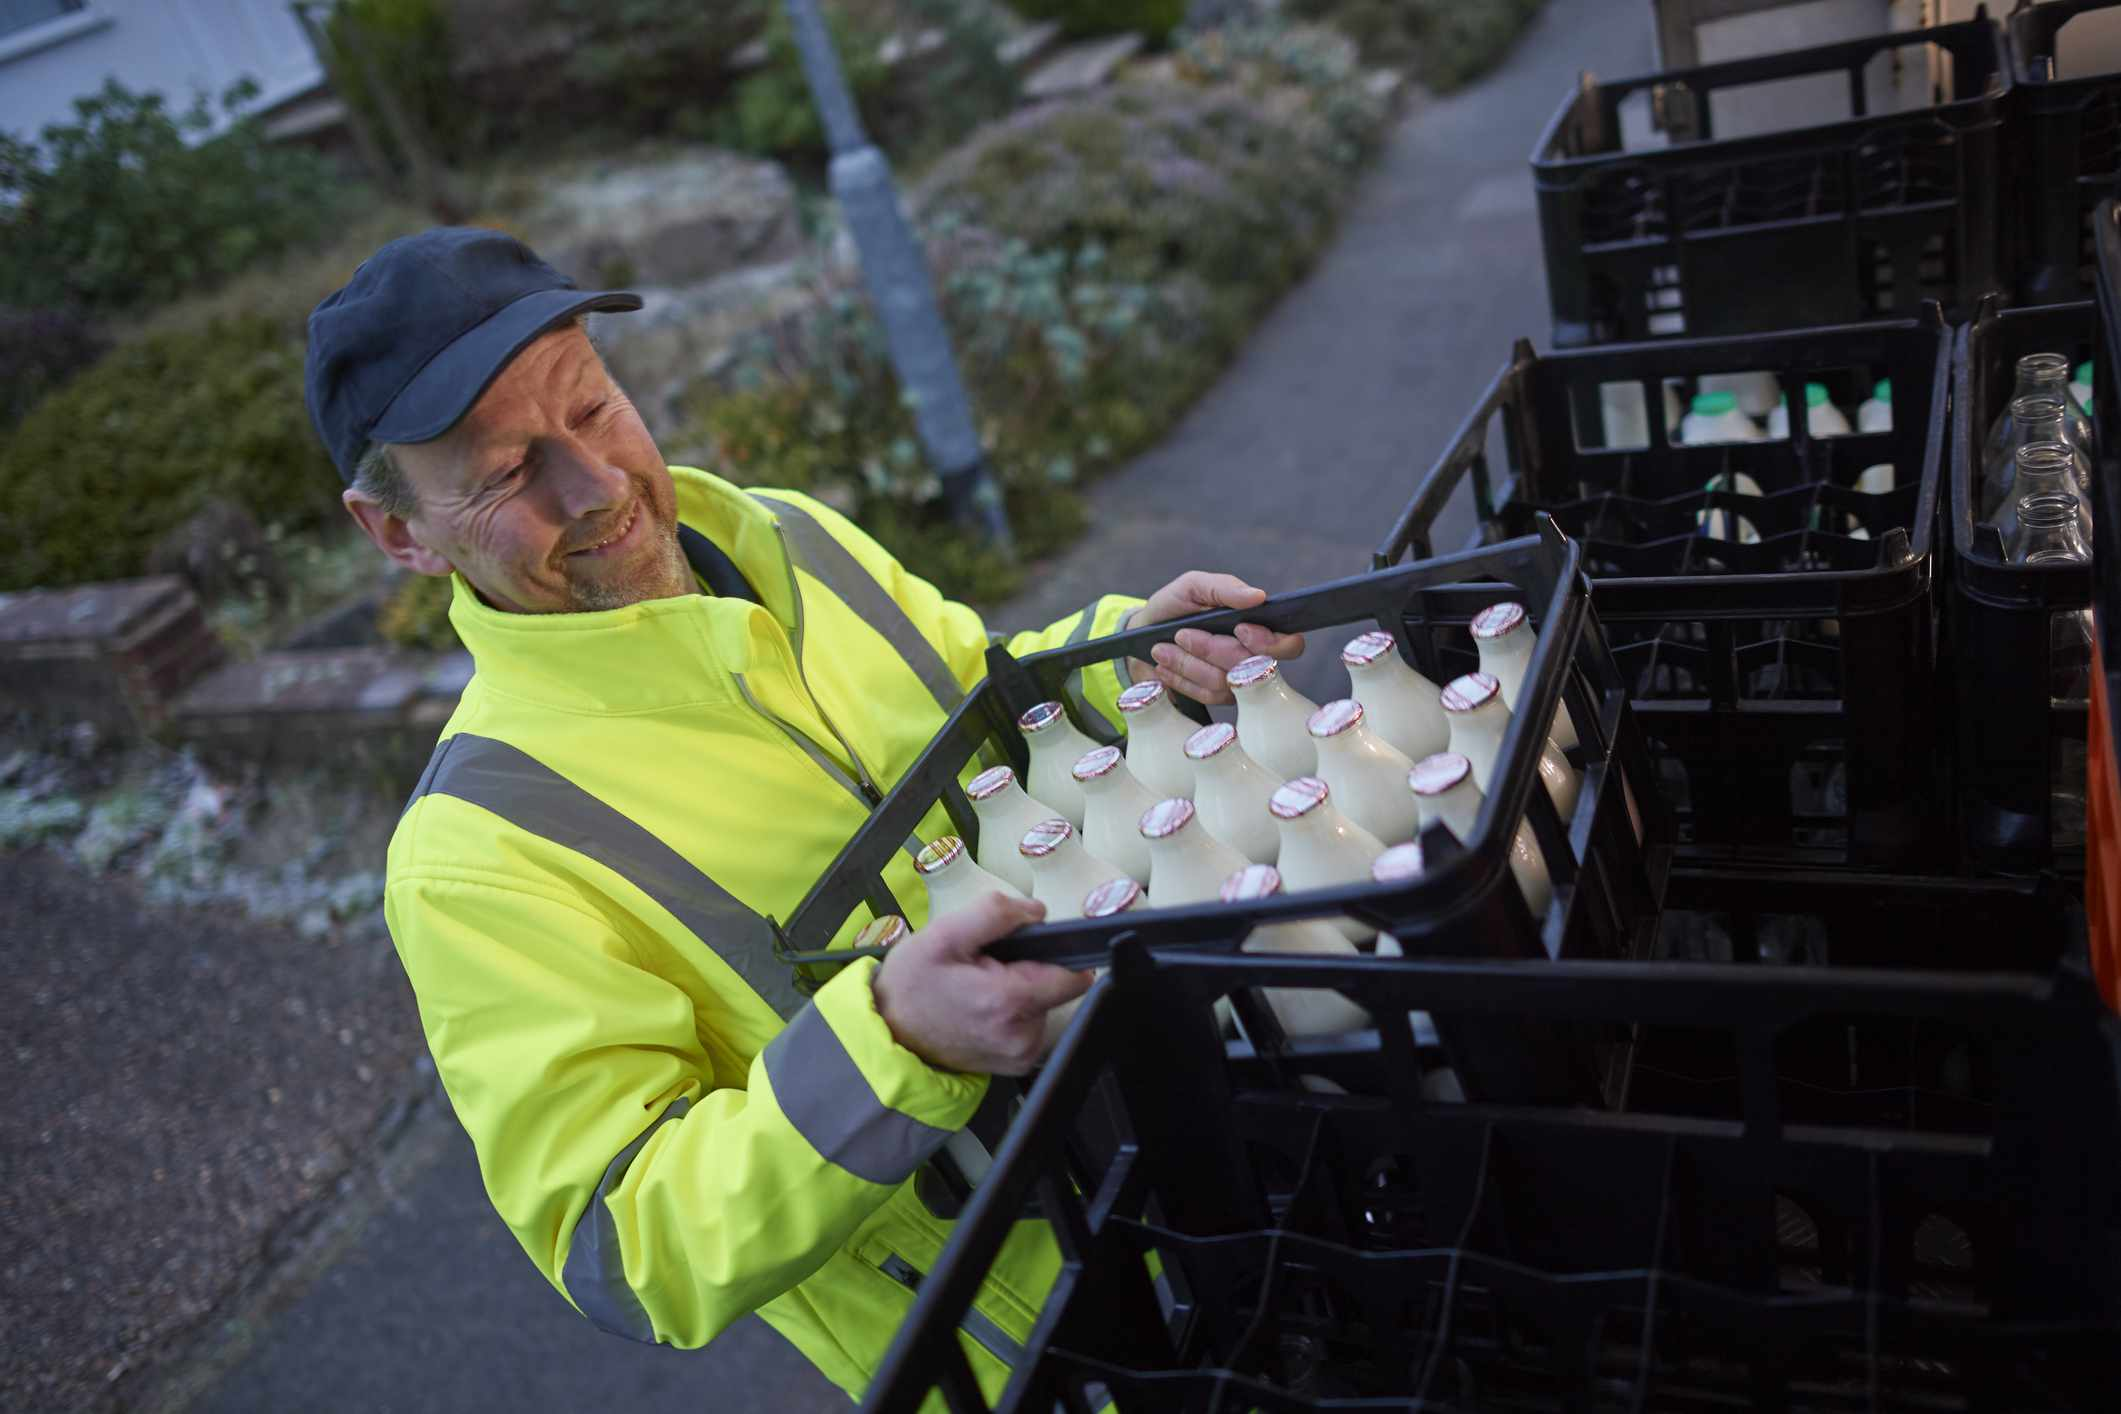 A milkman carries a crate full of bottles of milk of a truck.